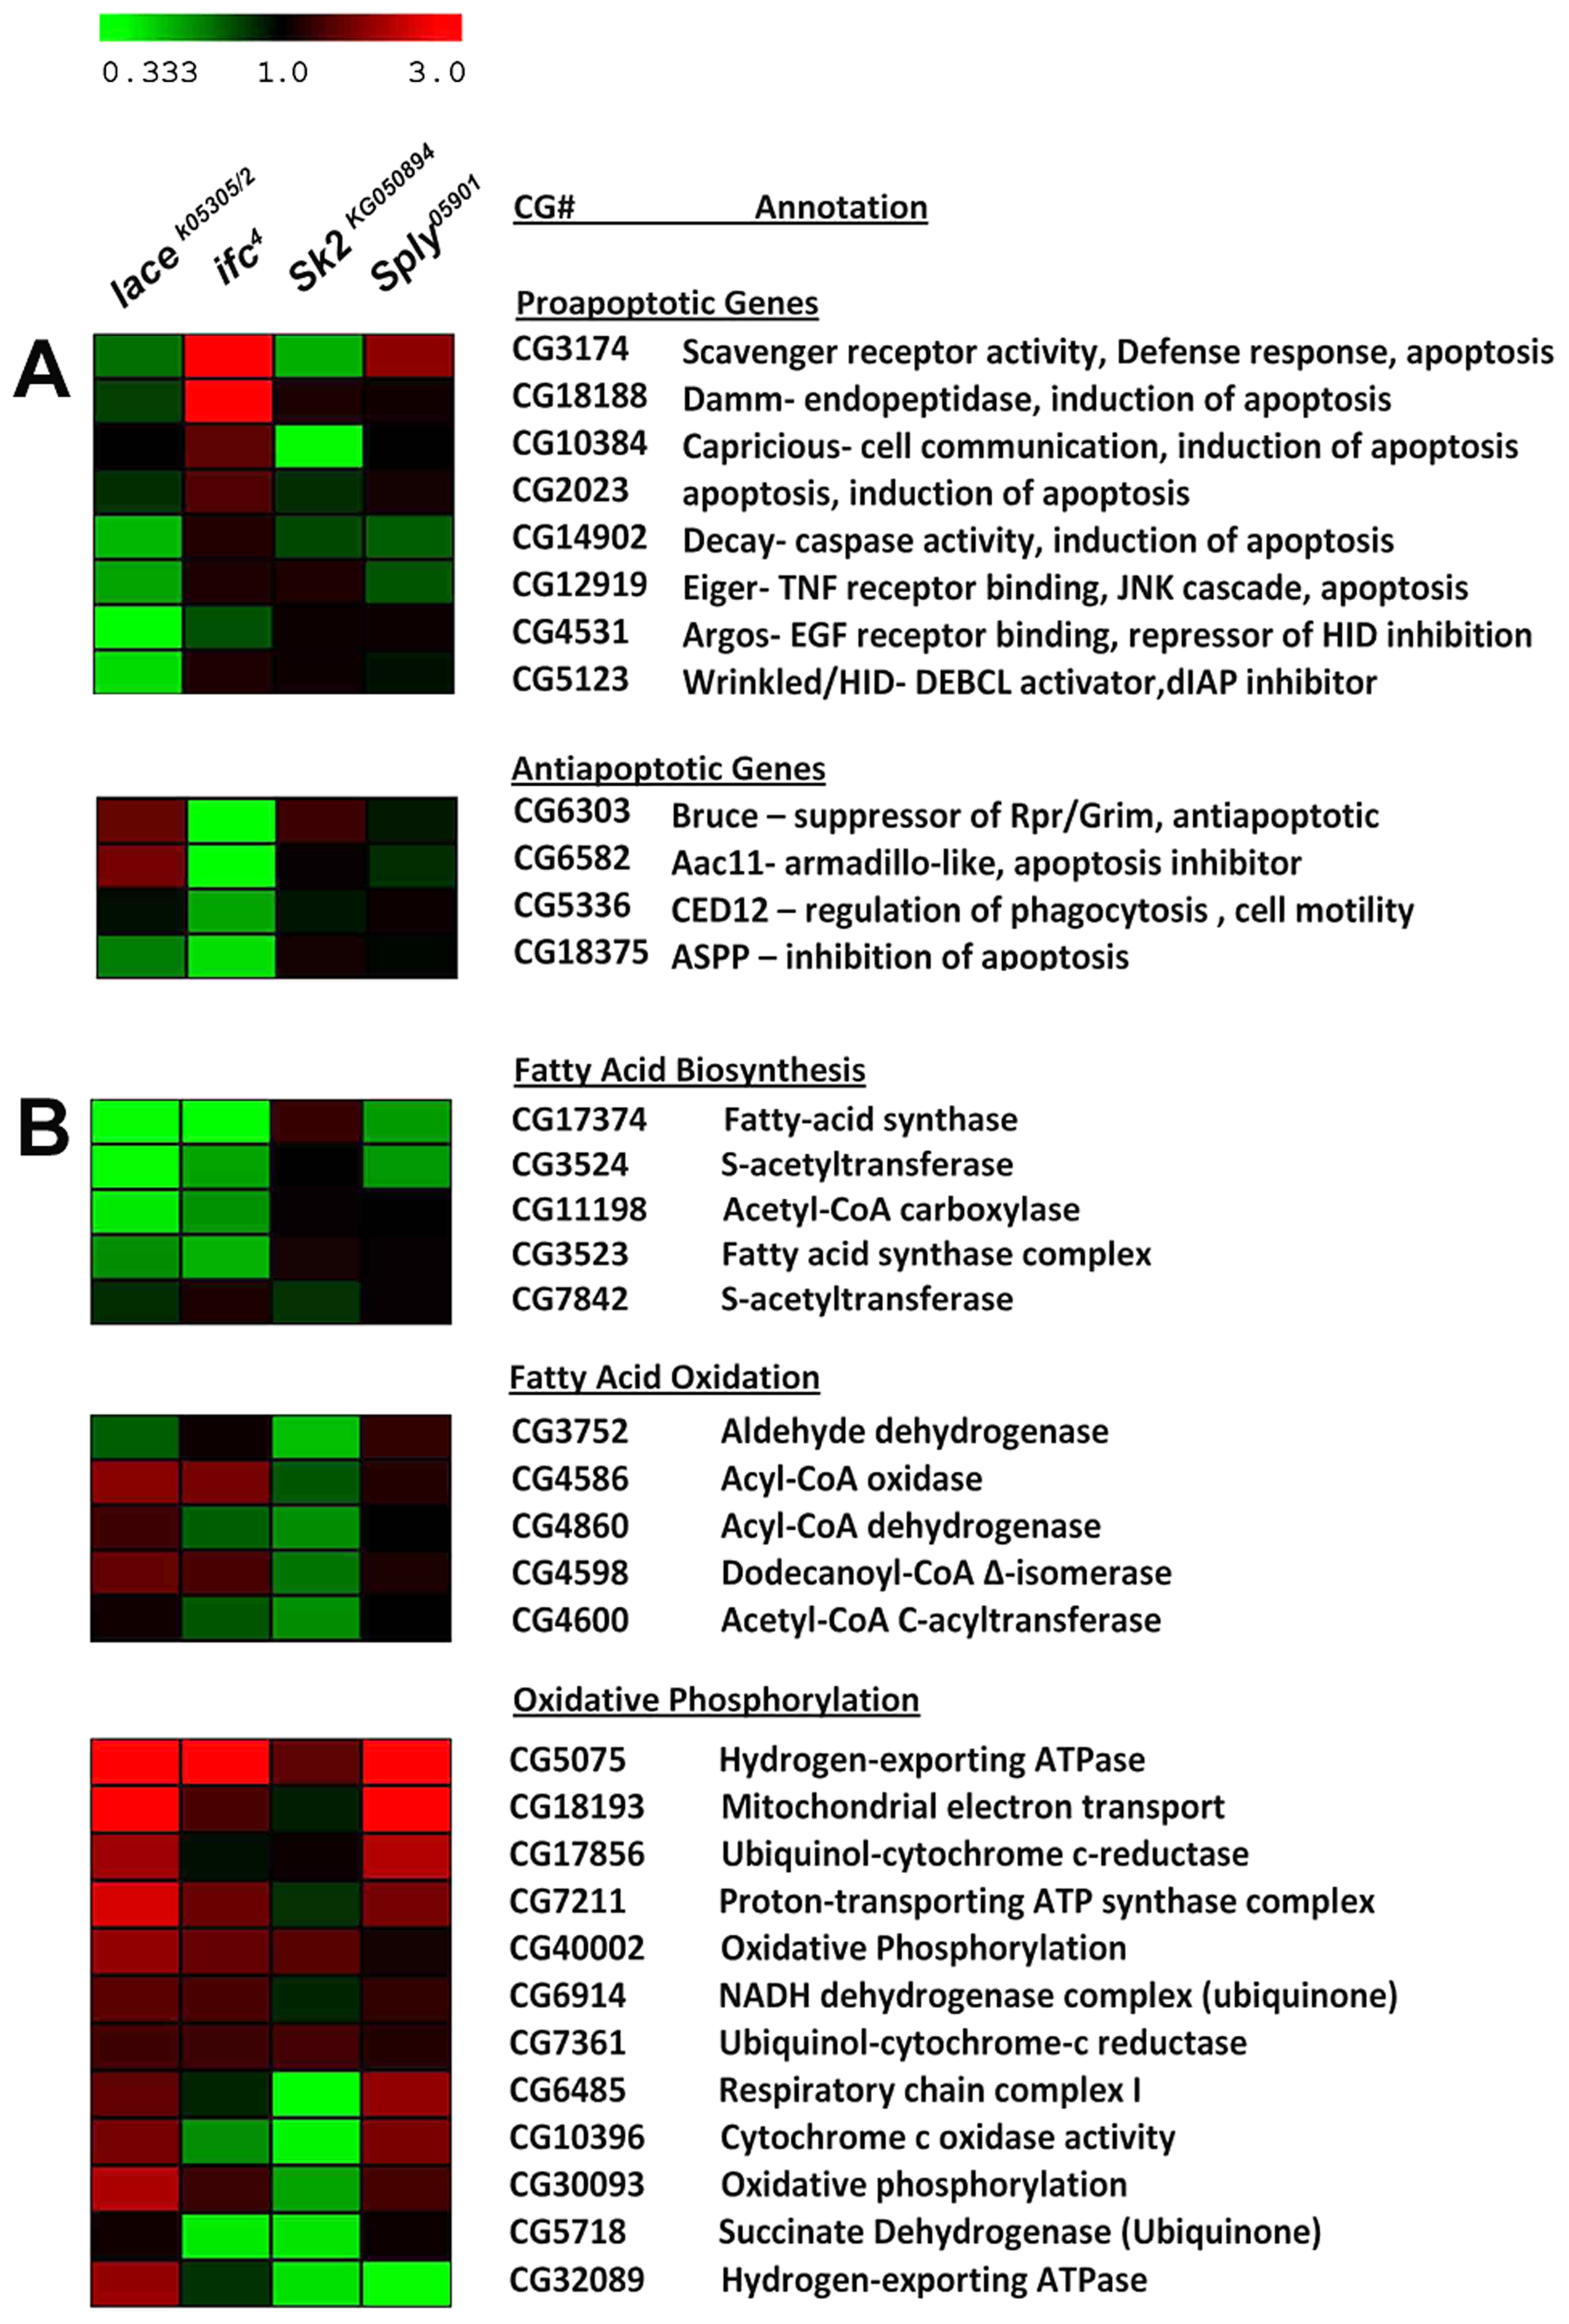 Differential expression of Lipid Metabolic and Apoptotic genes in SL mutants.